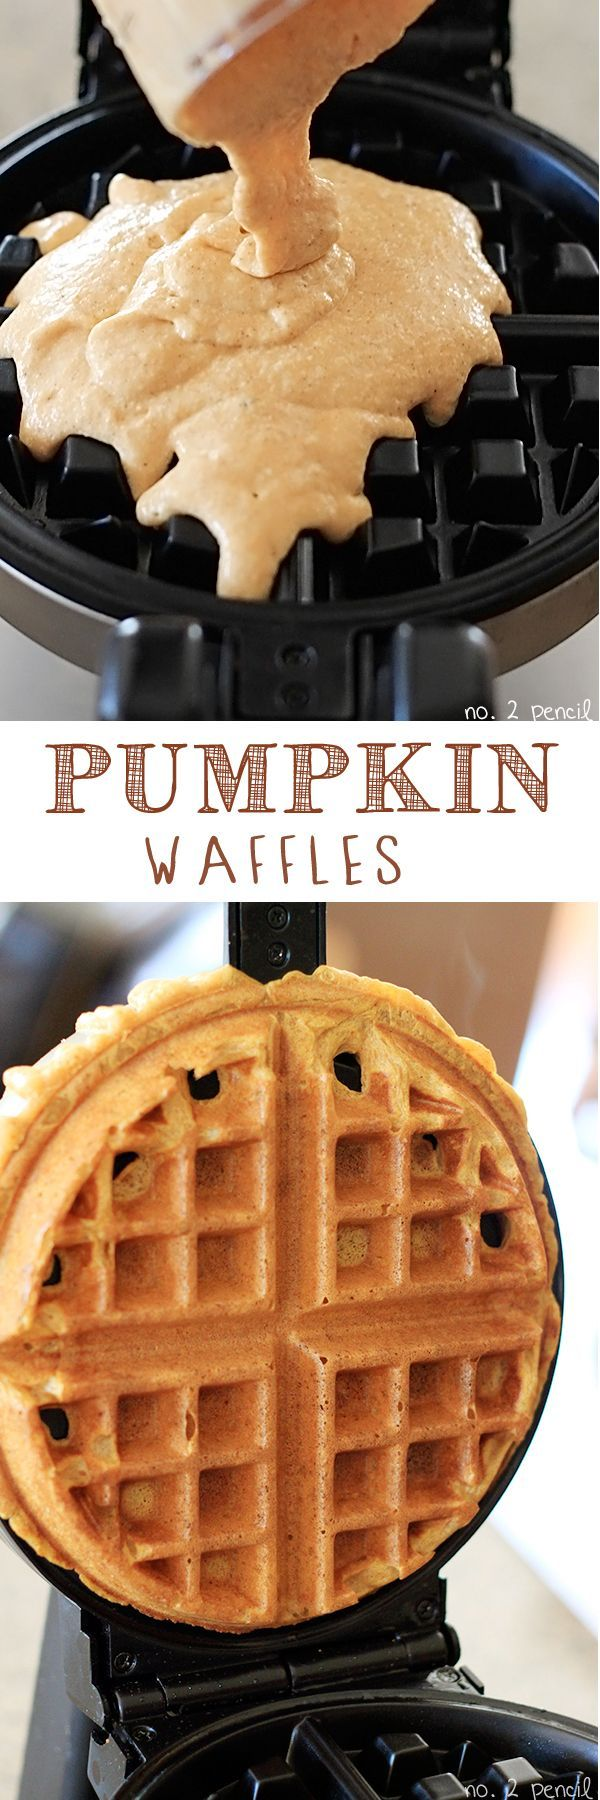 Pumpkin Waffles - crispy on the outside and tender and fluffy on the inside! #foodie